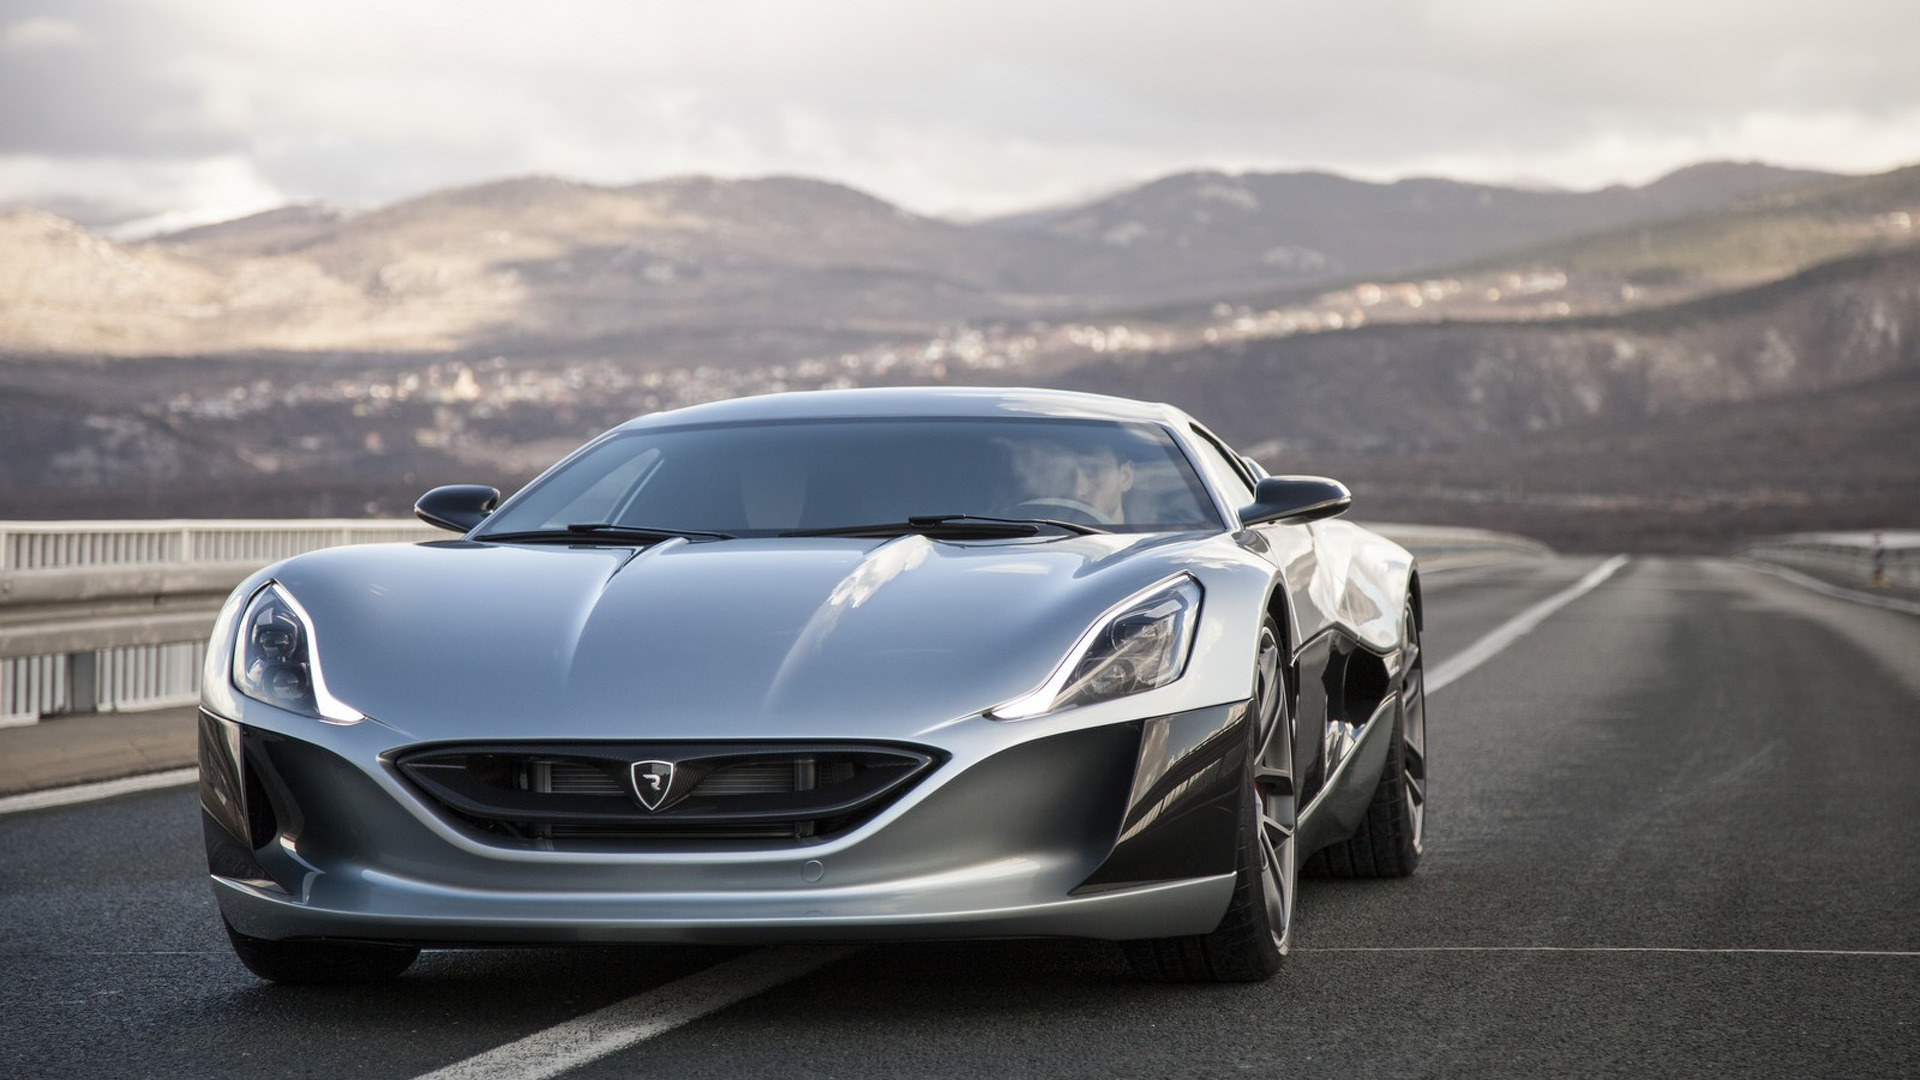 Production Rimac Concept_One unveiled with 1072 hp [video]